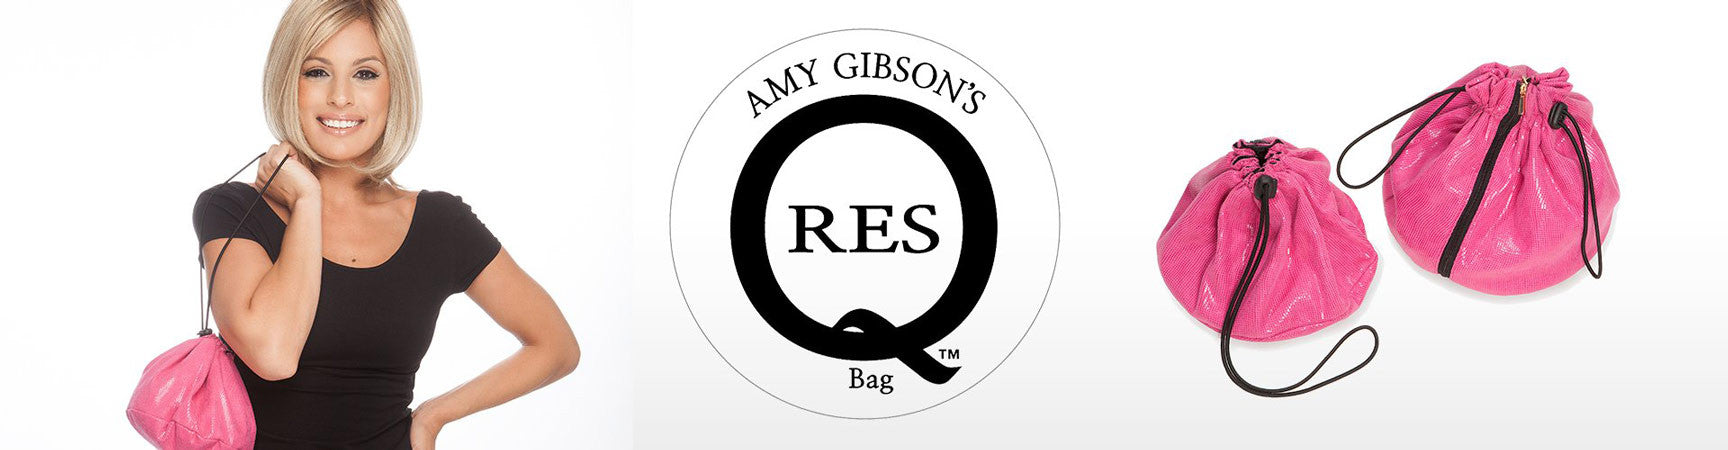 Amy Gibson Wig Accessories & Resq Bag